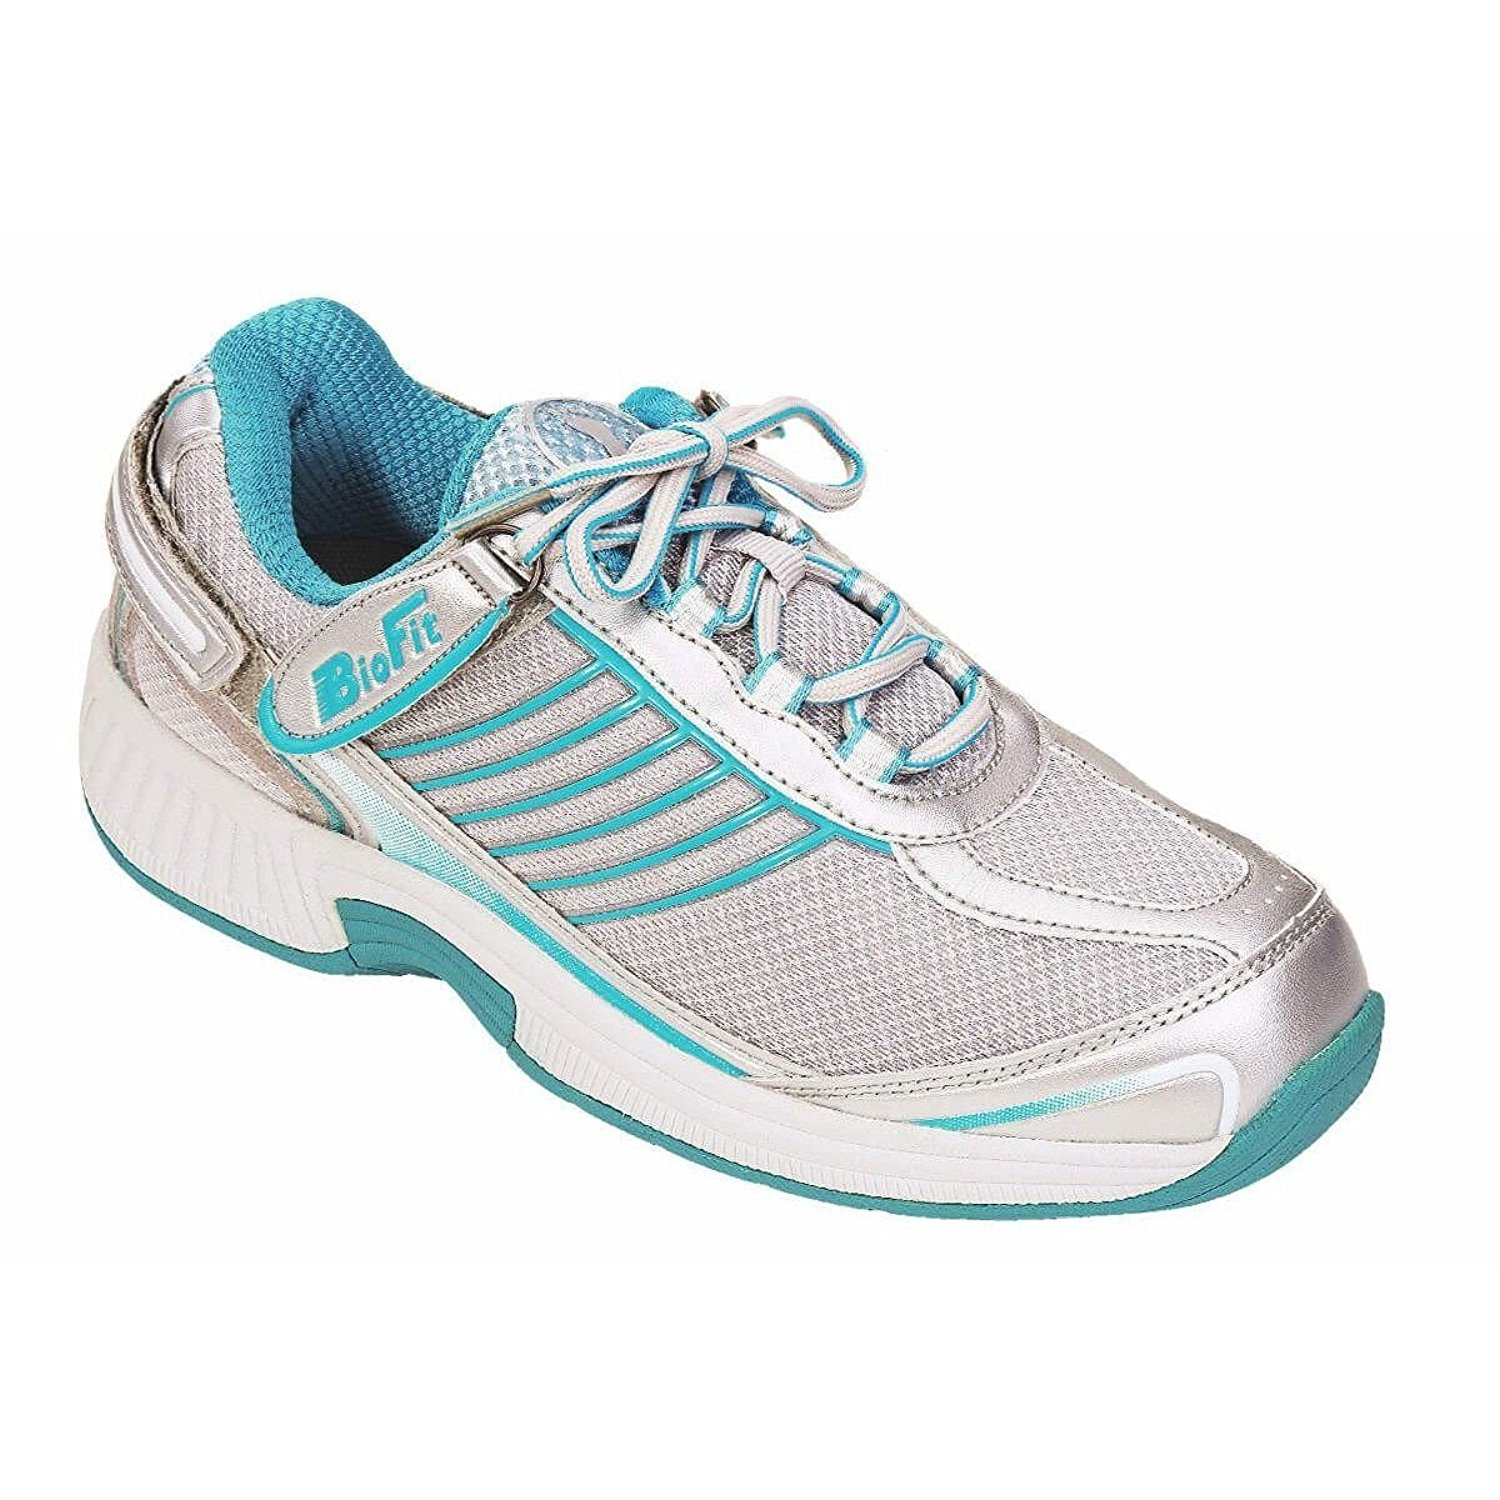 3d97926eb4c Buy Orthofeet Most Comfortable Plantar Fasciitis Verve Orthopedic Diabetic  Athletic Shoes for Women in Cheap Price on m.alibaba.com